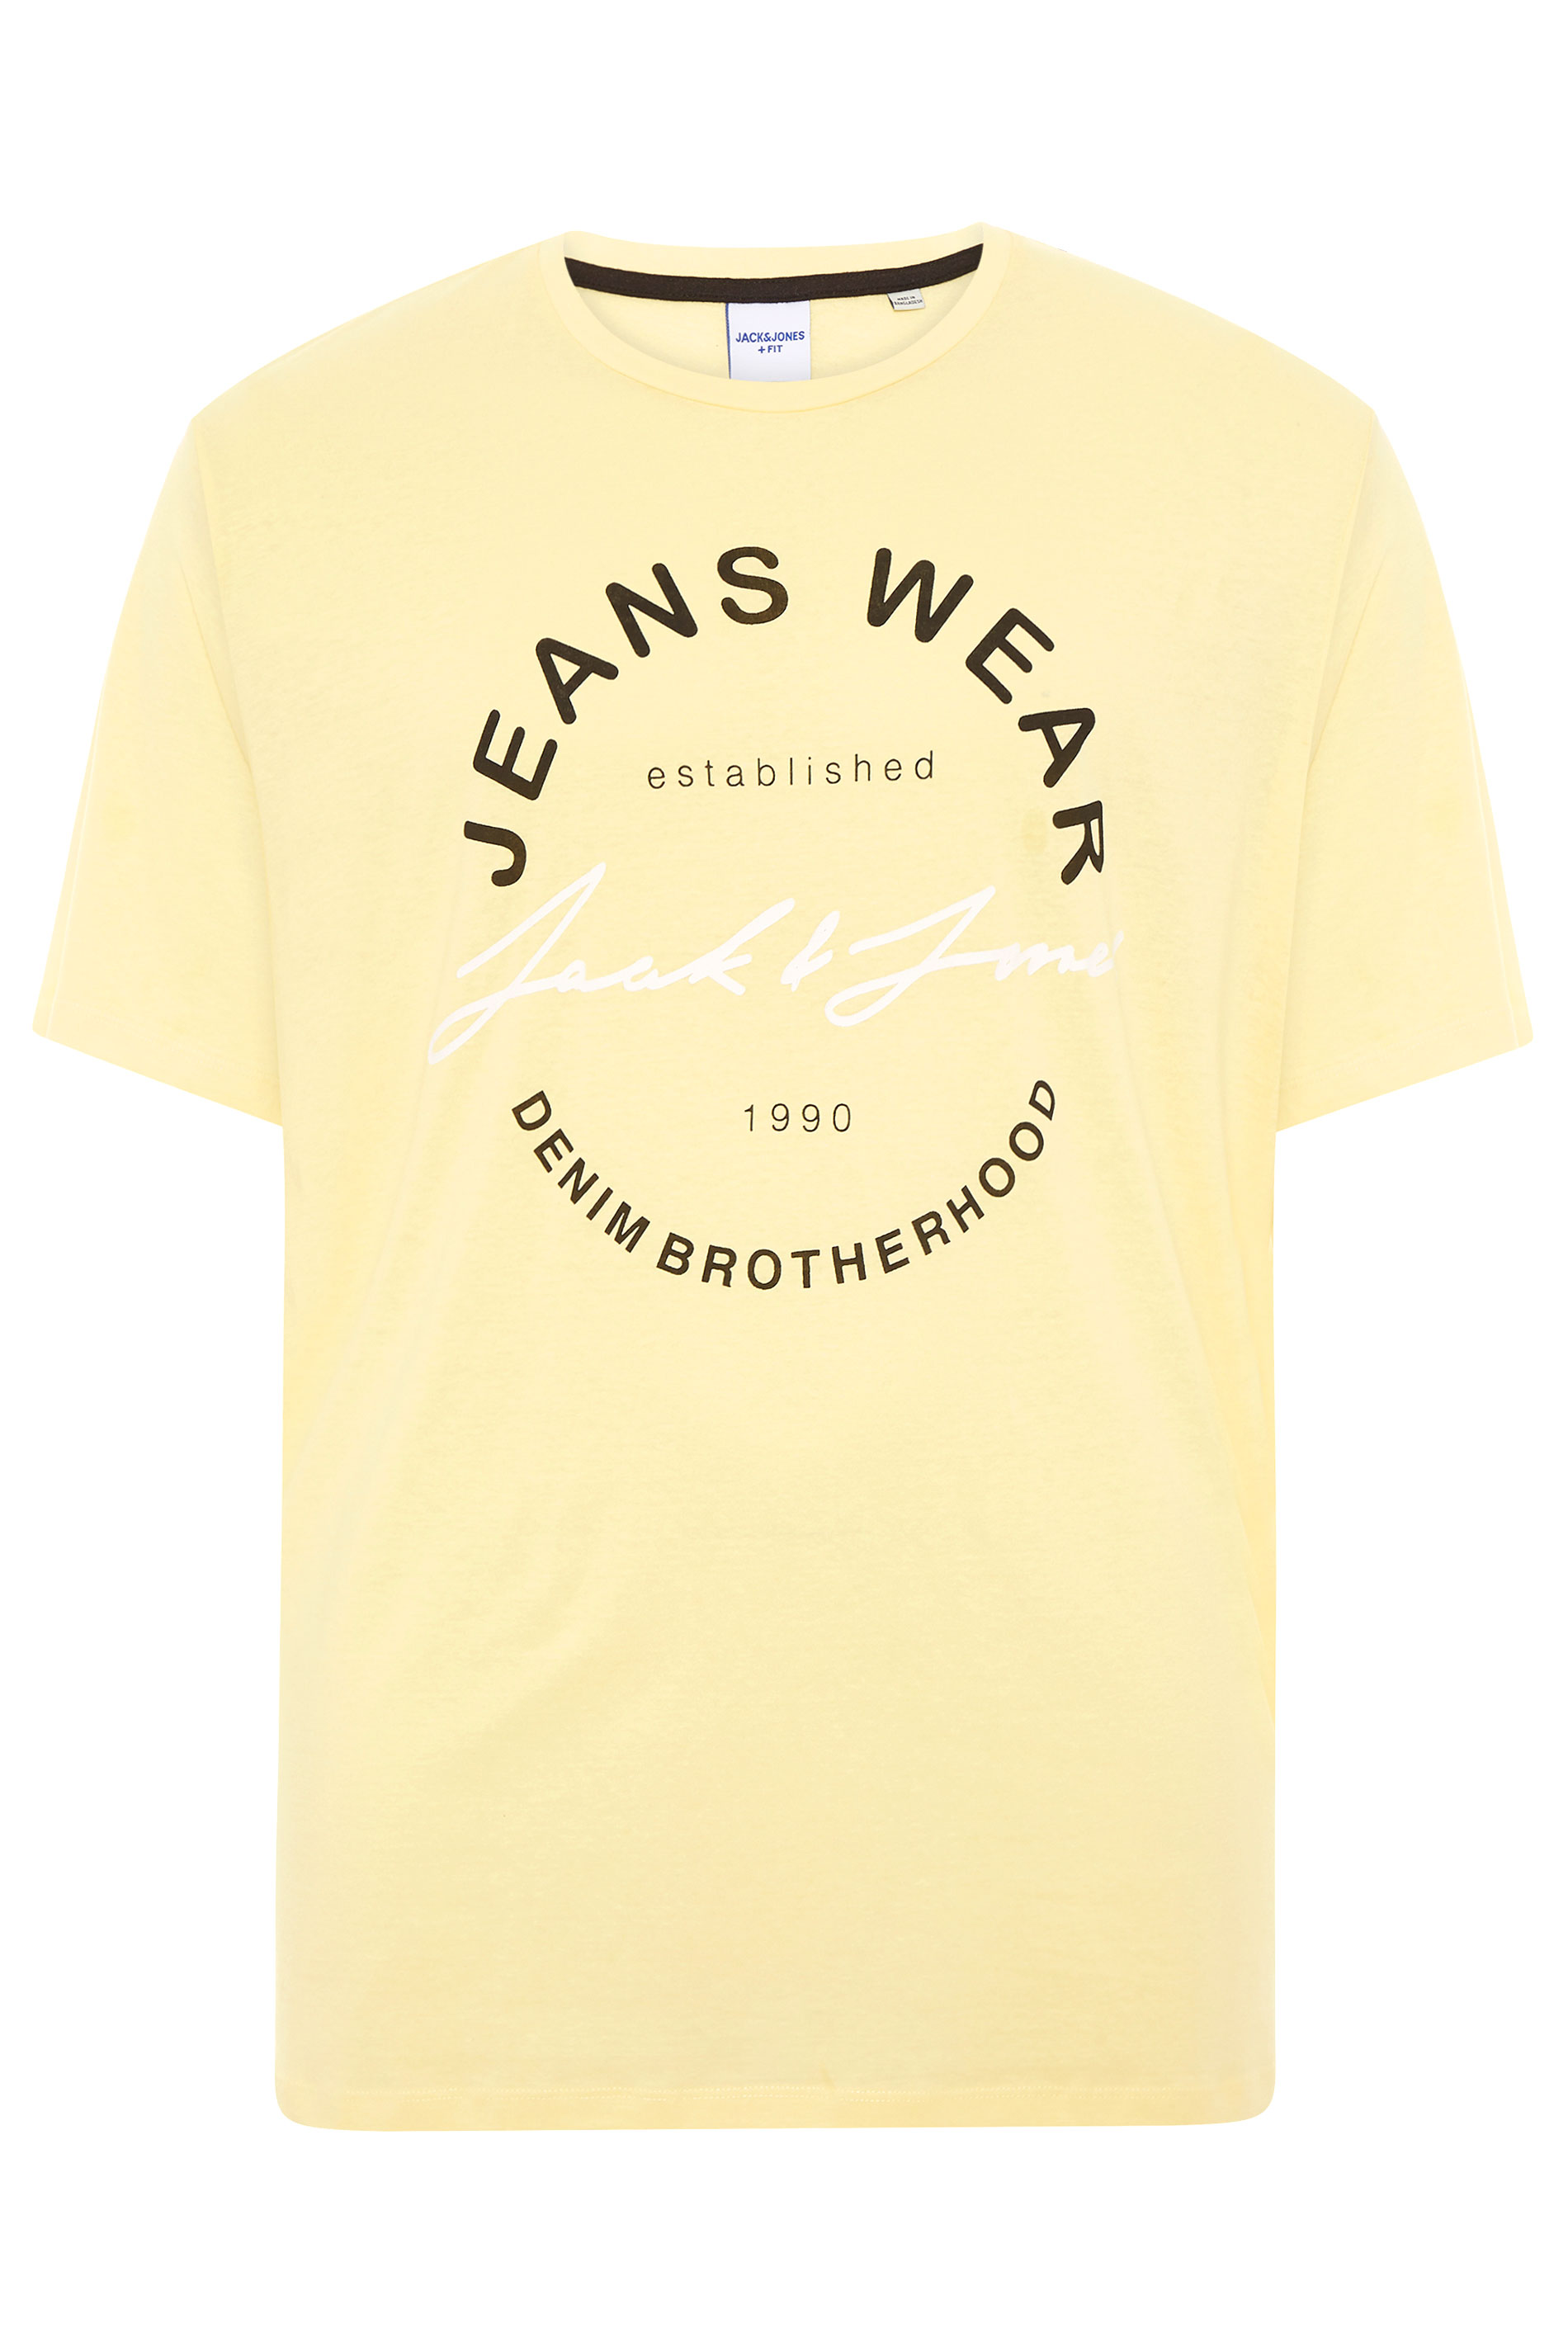 JACK & JONES Yellow Moon Logo T-Shirt